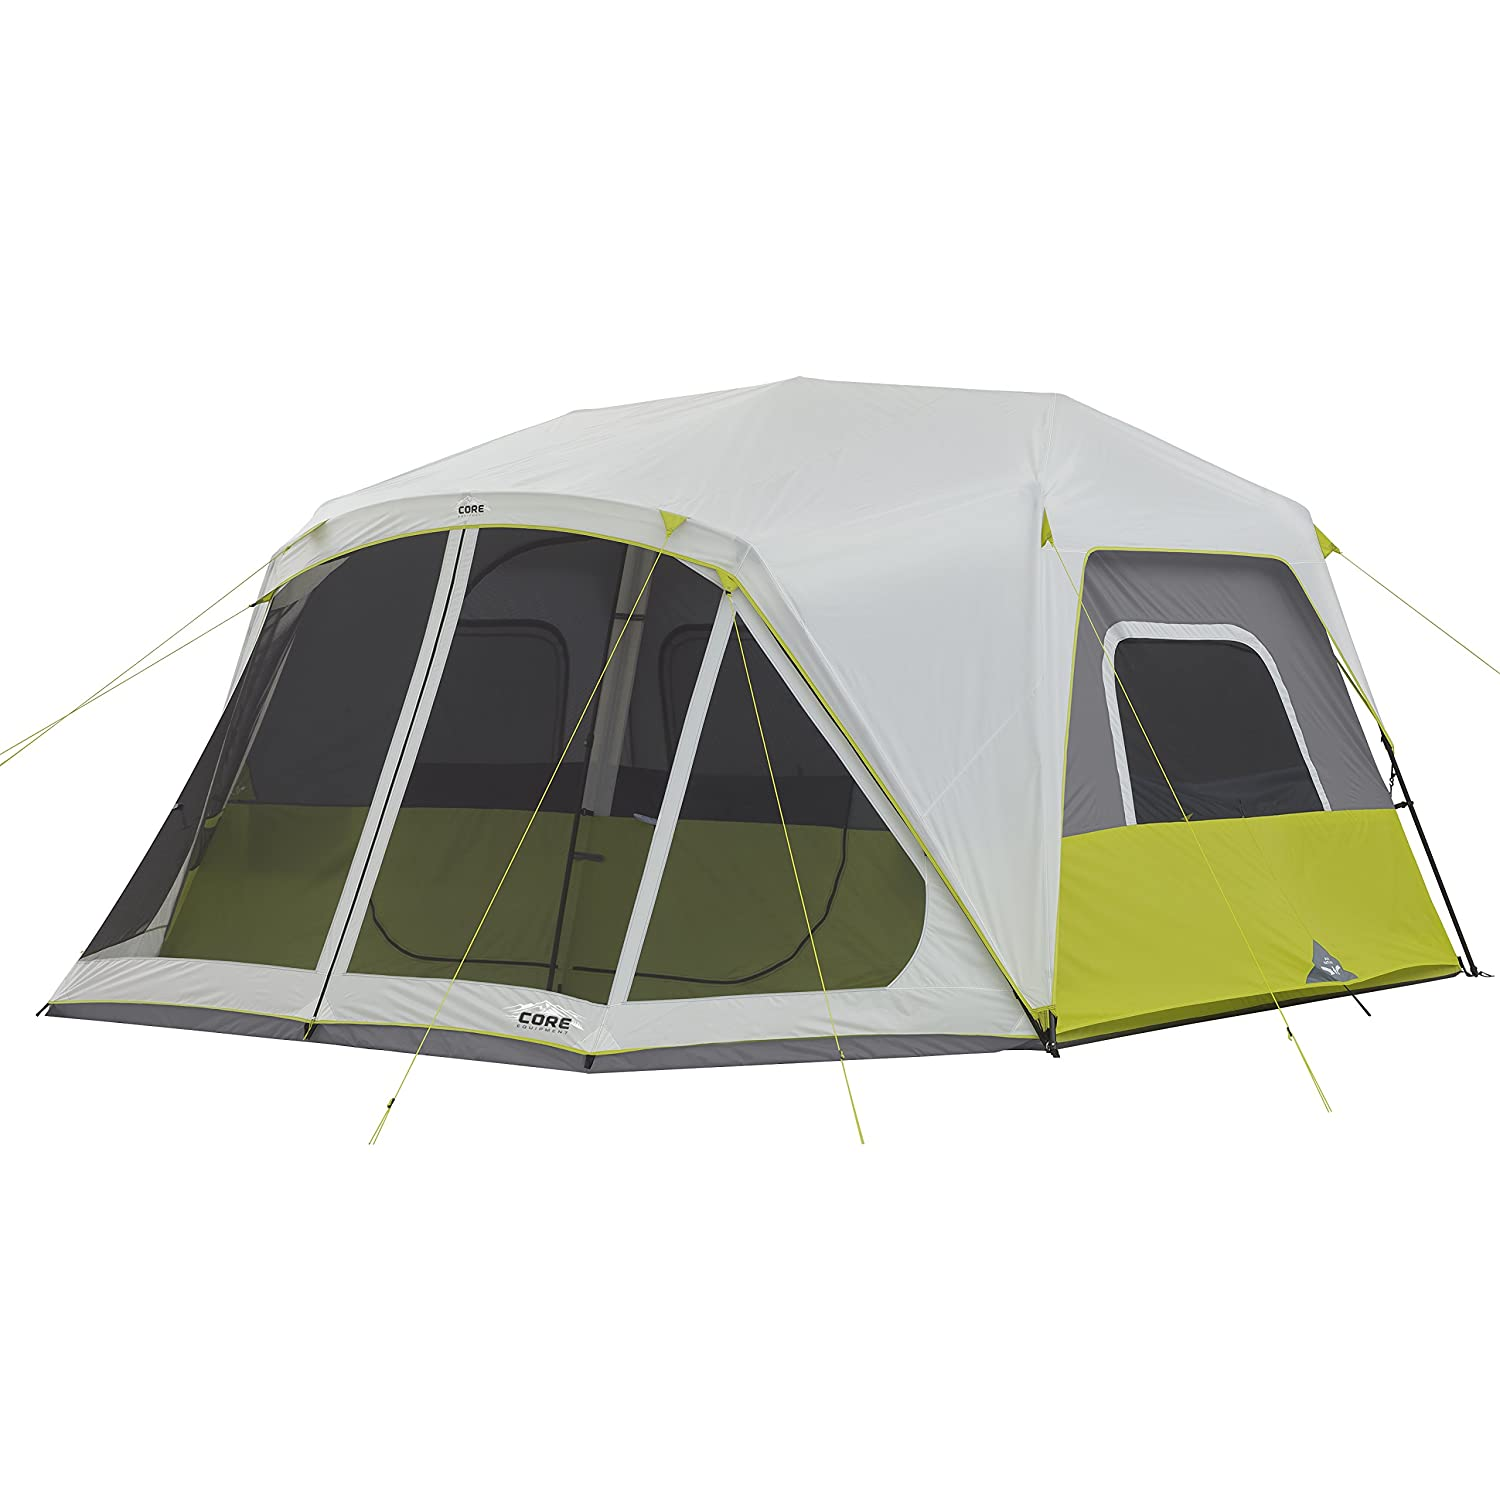 CORE 10 Person Instant Cabin Tent with Screen Room, Instant Tents Review